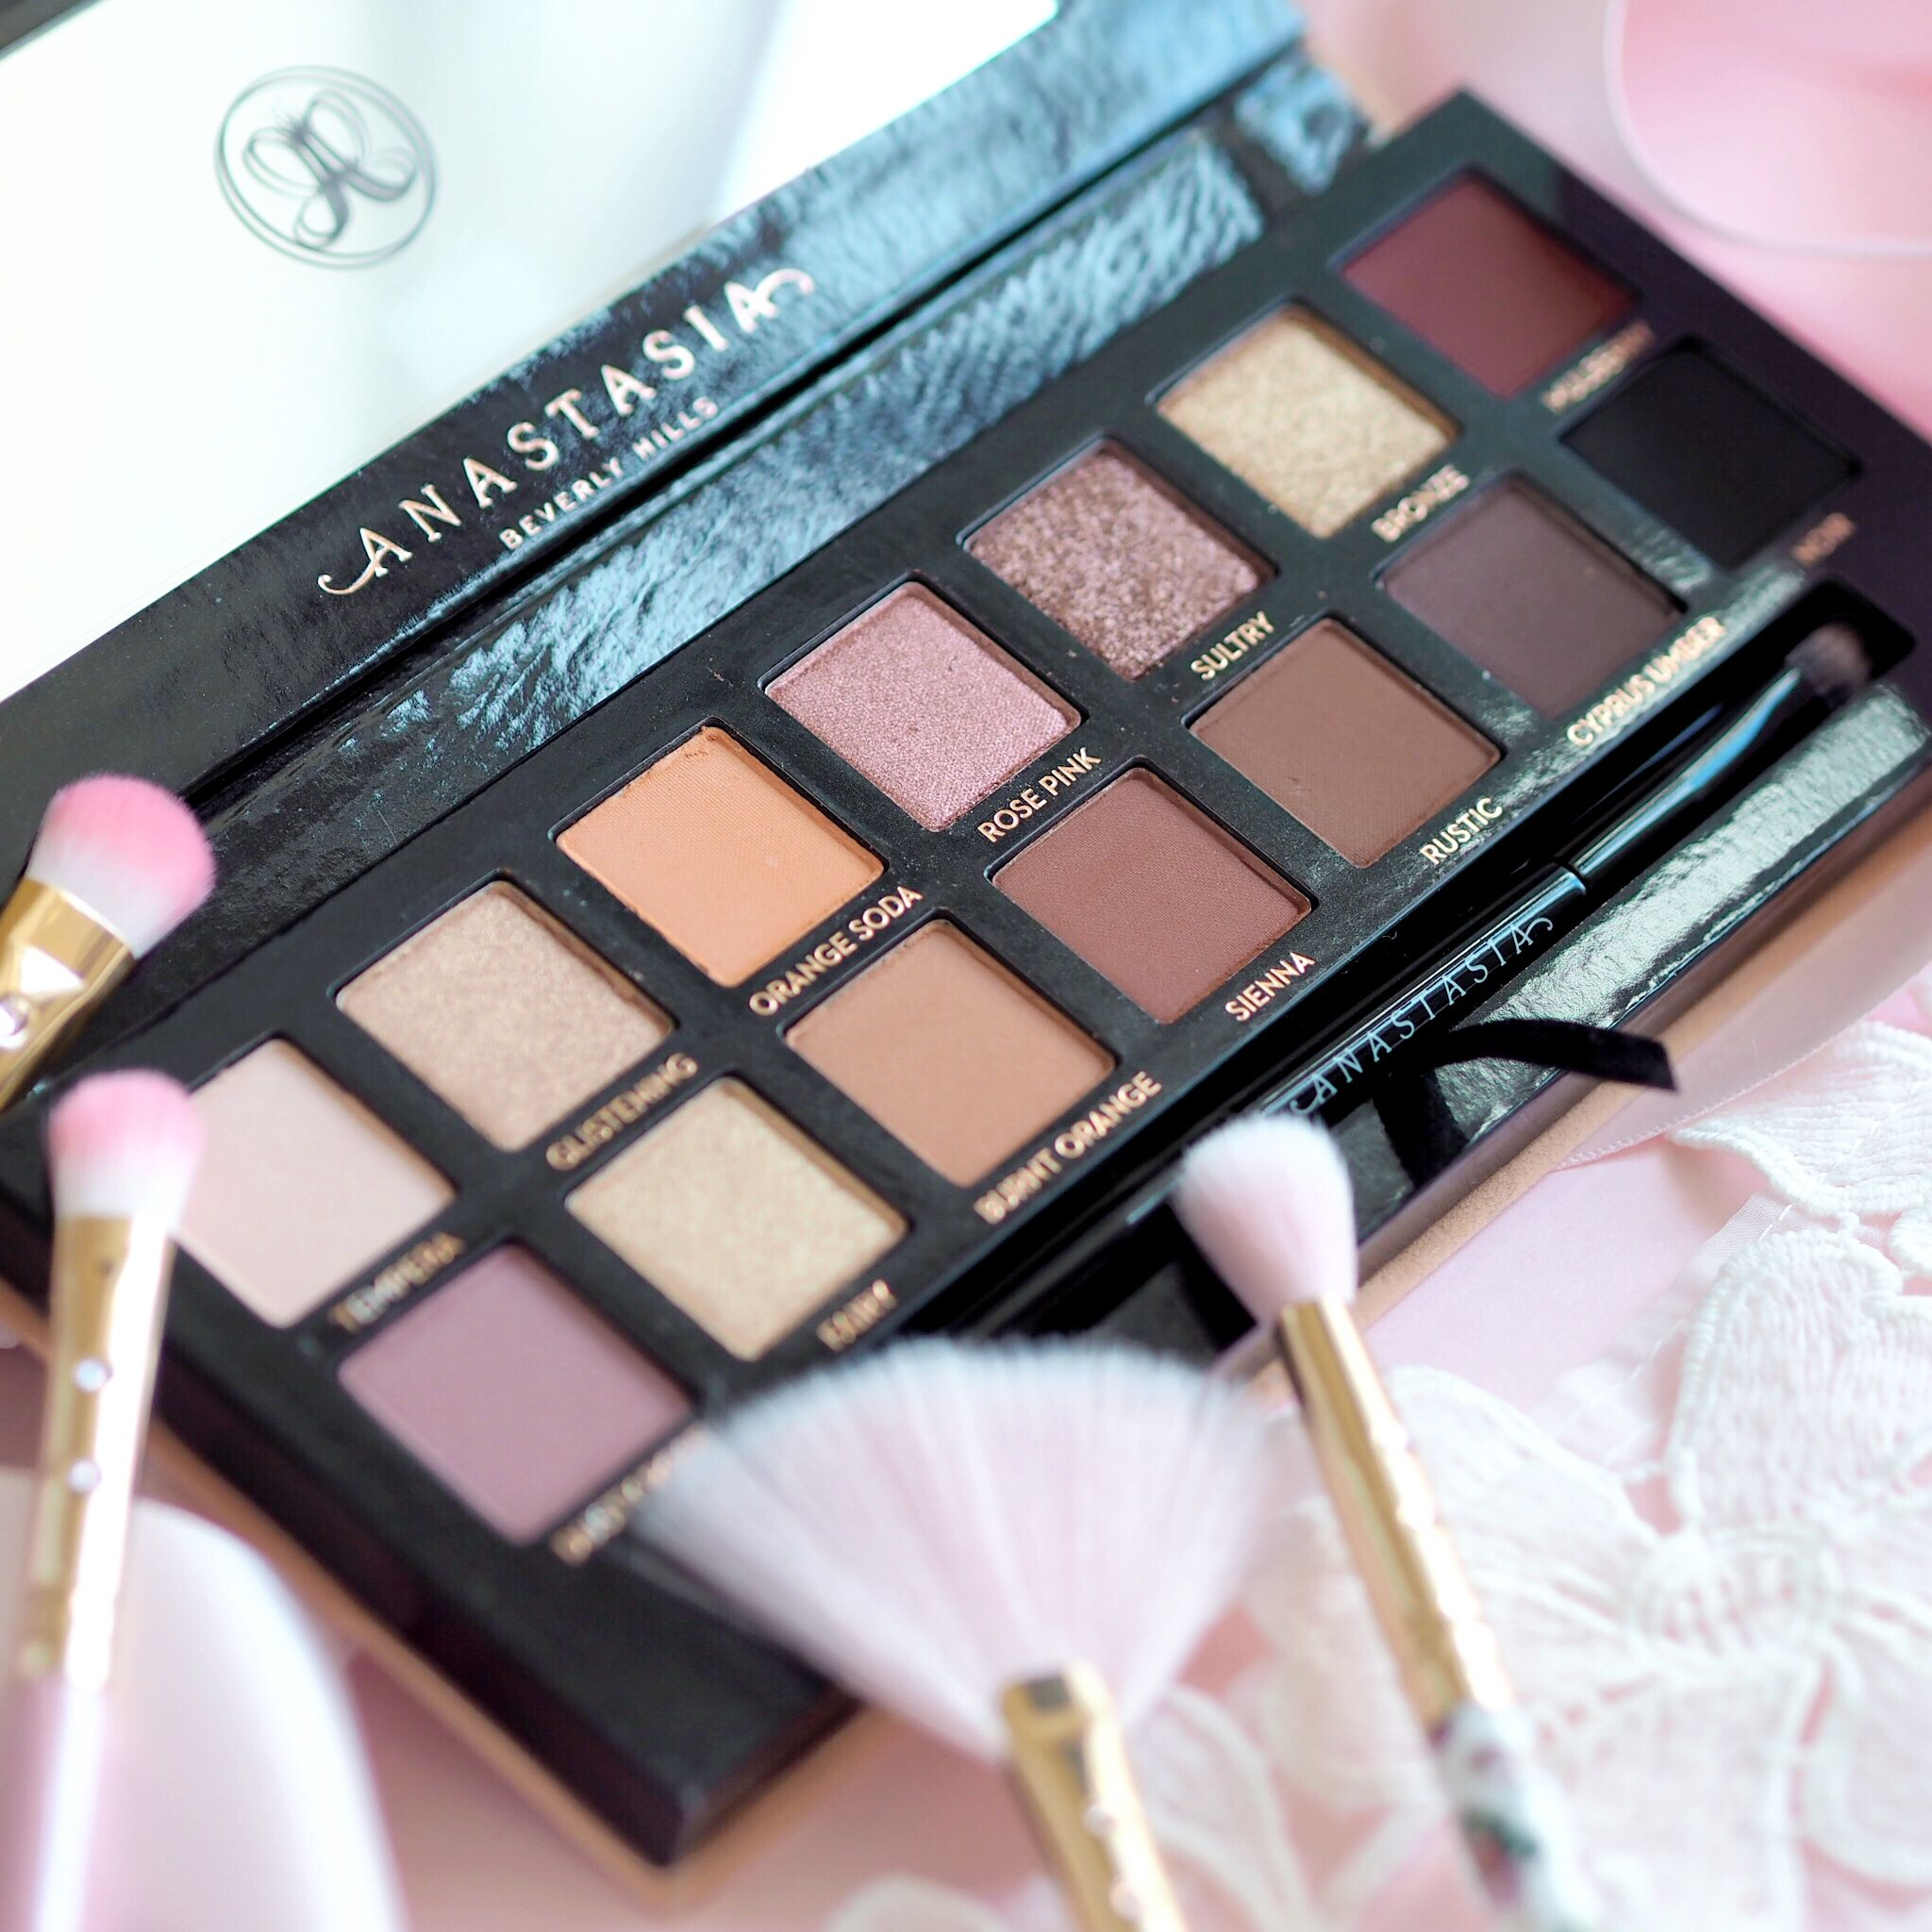 Anastasia Beverly Hills Soft Glam Eyeshadow Palette, Swatches | Love Catherine